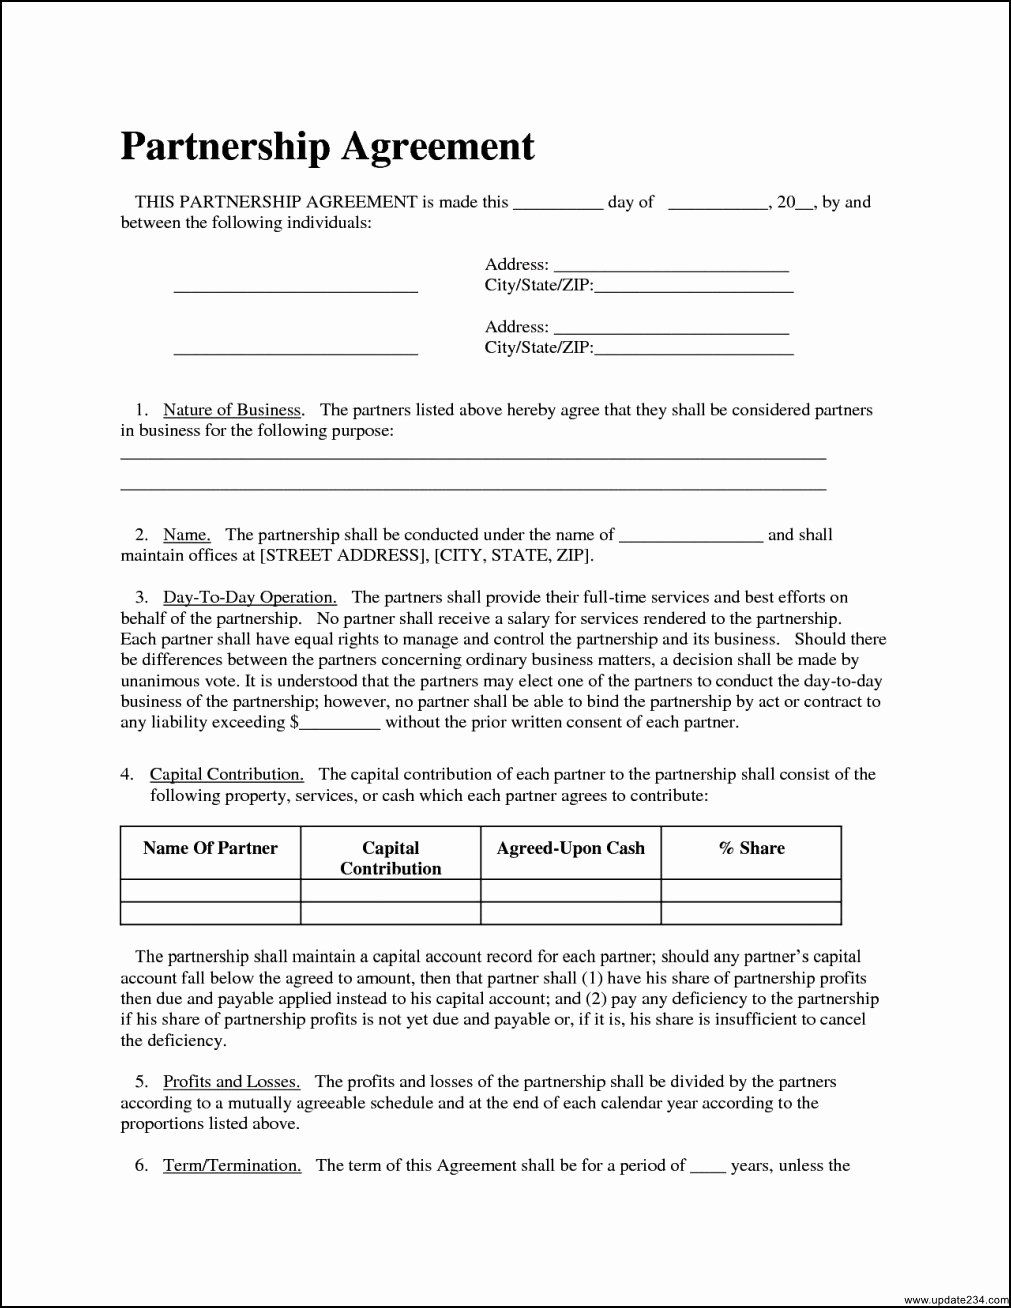 Business contract template free best of simple partnership